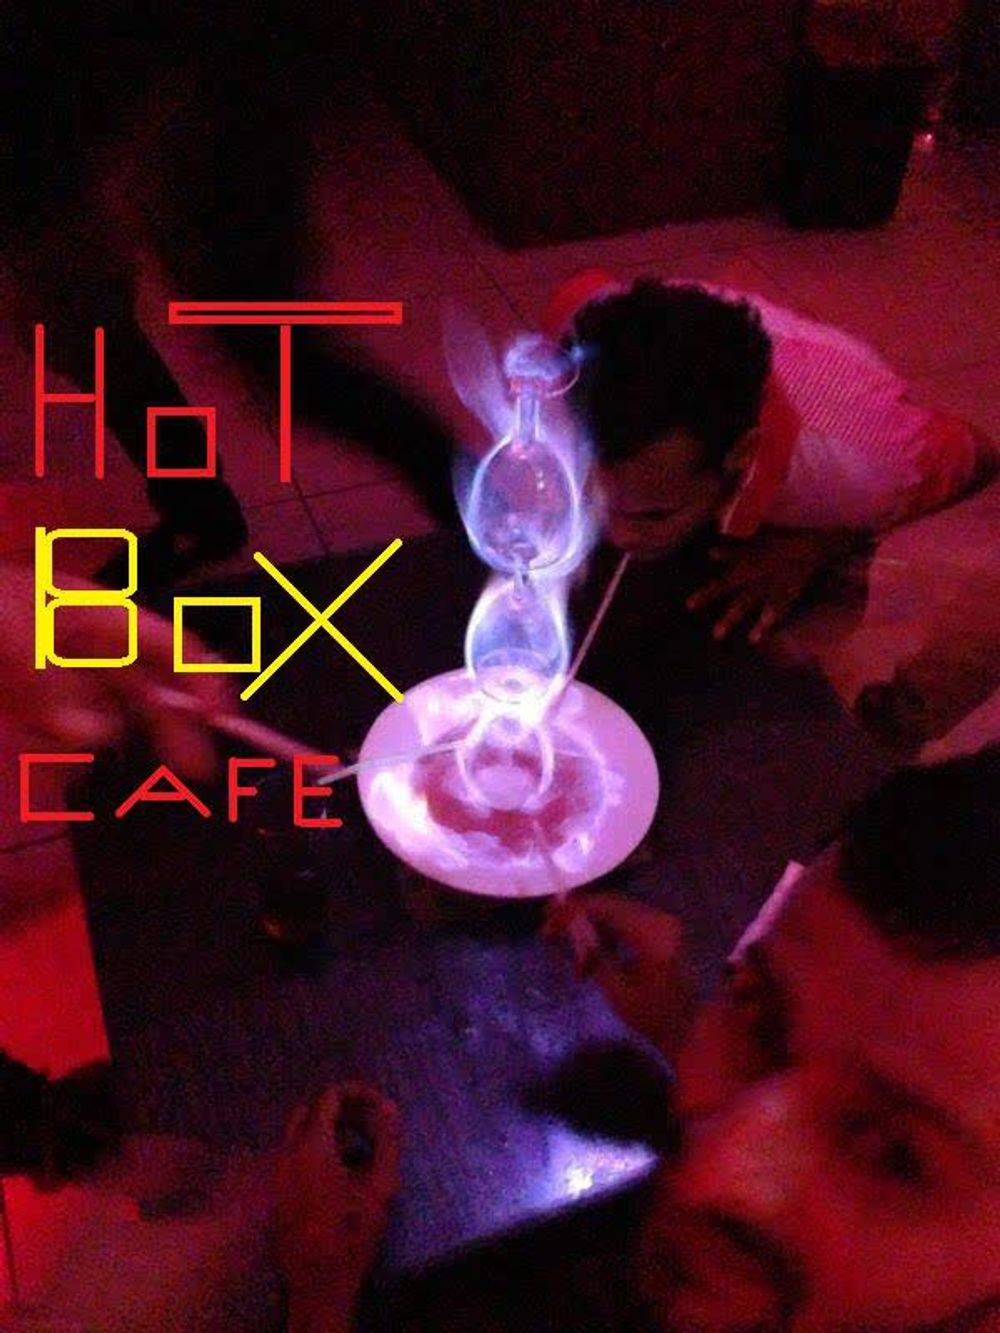 The Hot Box Cafe